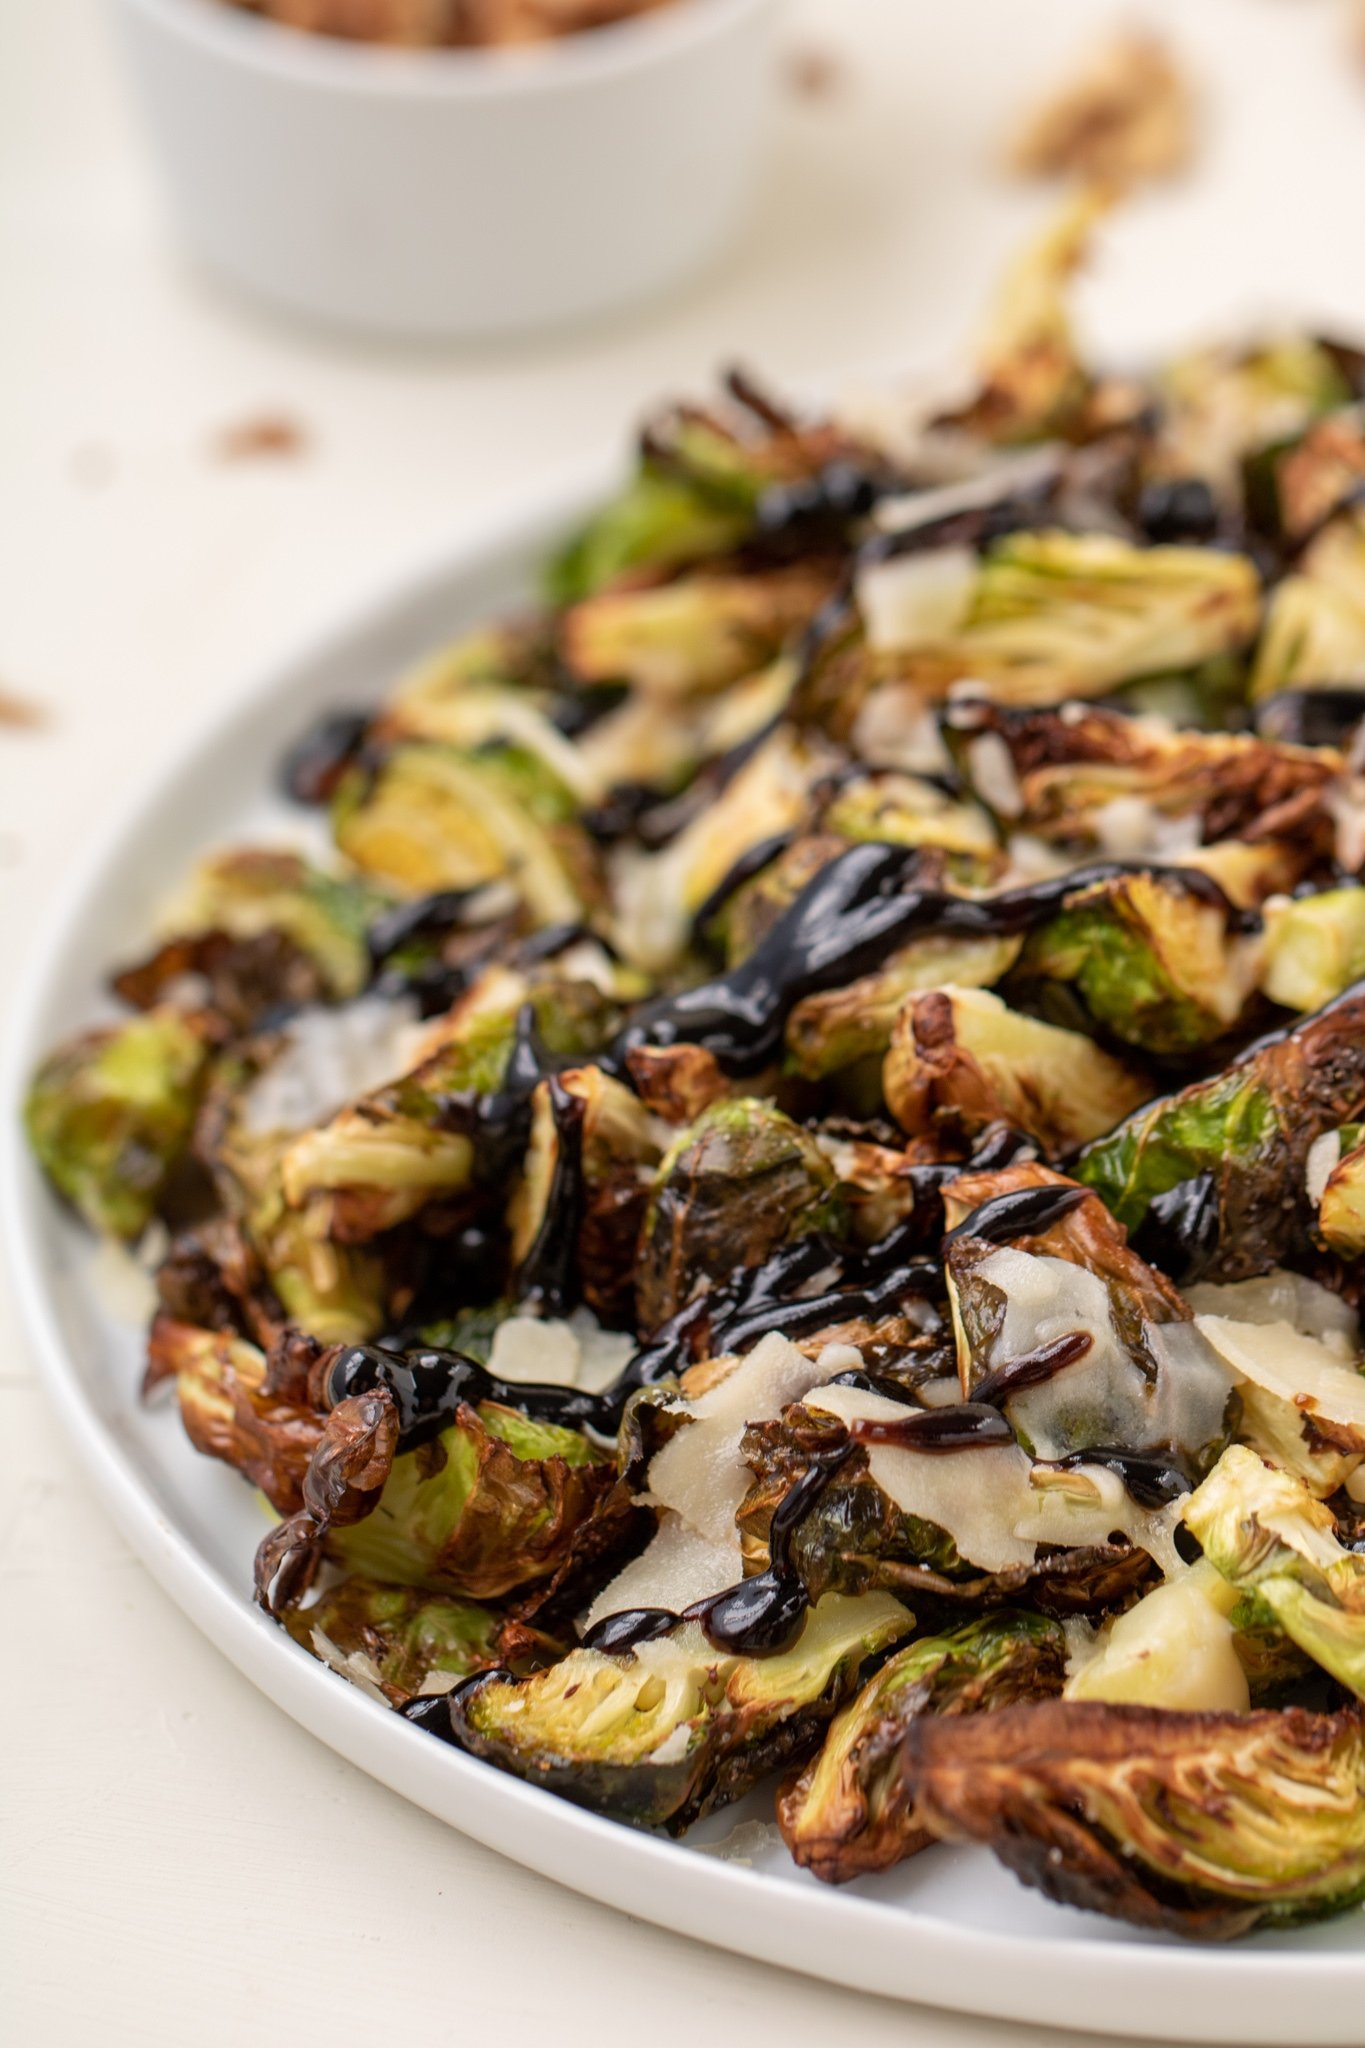 Air frier Brussel sprouts with parmesan and balsamic glaze